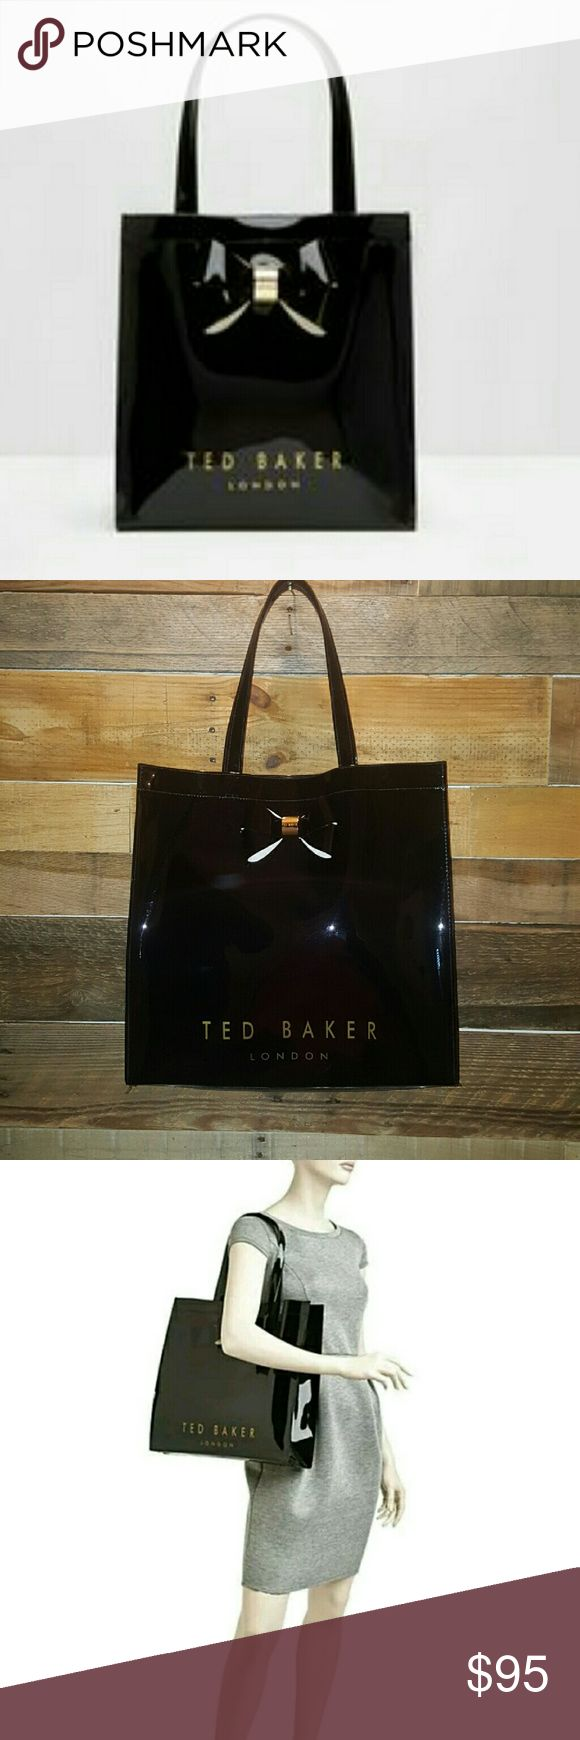 NWOT TED BAKER LONDON ICON BOW BLACK PATENT BAG TED BAKER LONDON BRAND NEW PRICE FIRM! WITHOUT TAGS/NEVER USED BLACK SIZE LARGE HIGHLY DESIRABLE! CUTE FUN TRENDY SGOULDER BAG PATENT DESIGN BOW DETAIL FRONT MAGNETIC CLOSURE TOP INSIDE ZIP POCKET LOTS OF ROOM *NO TRADES NO RETURNS* Ted Baker London Bags Shoulder Bags